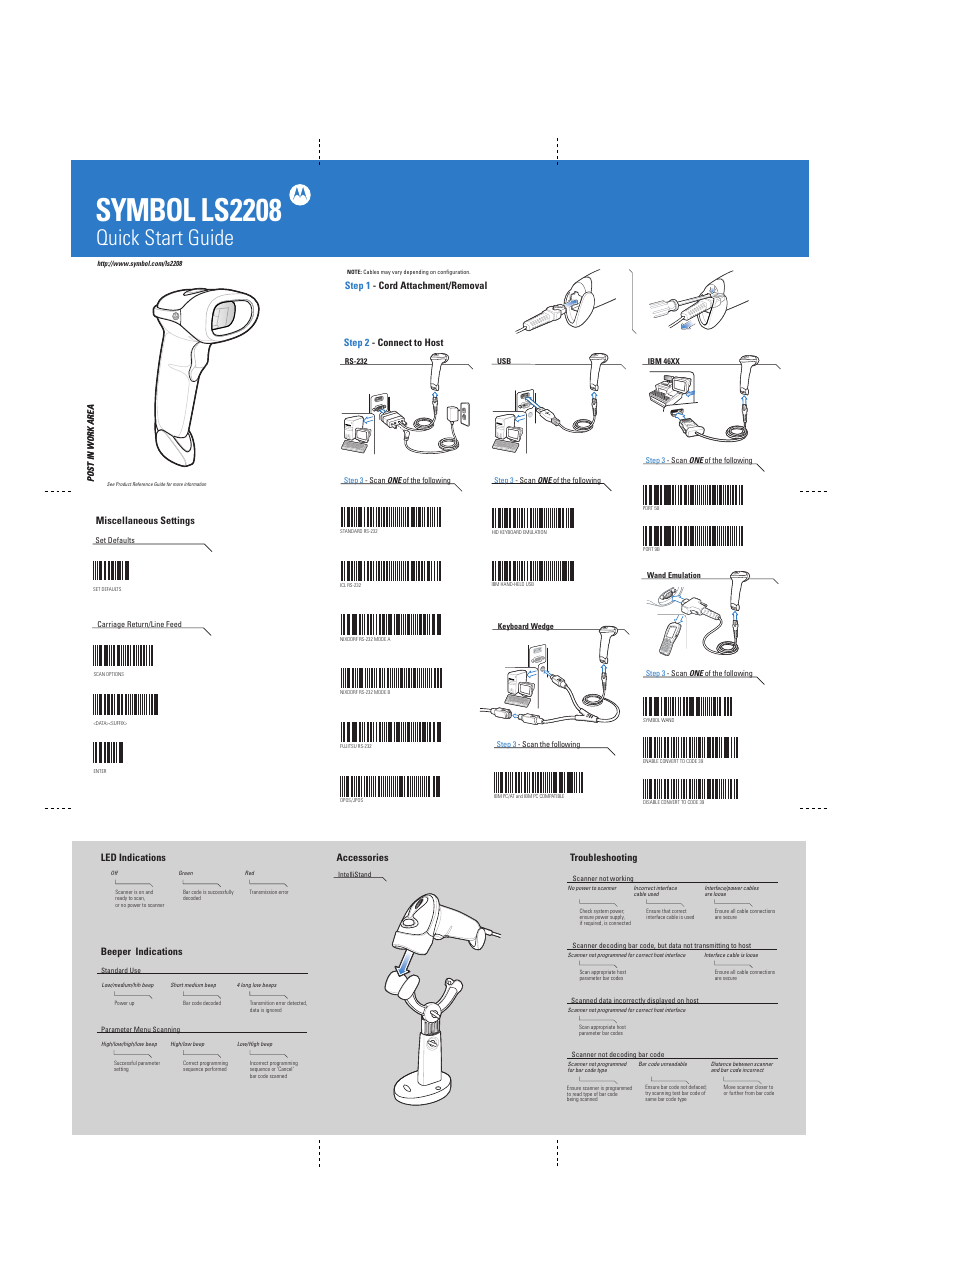 symbol ls2208 quick start guide open source user manual u2022 rh dramatic varieties com symbol ls2208 manual enter symbol ls2208 manuale italiano